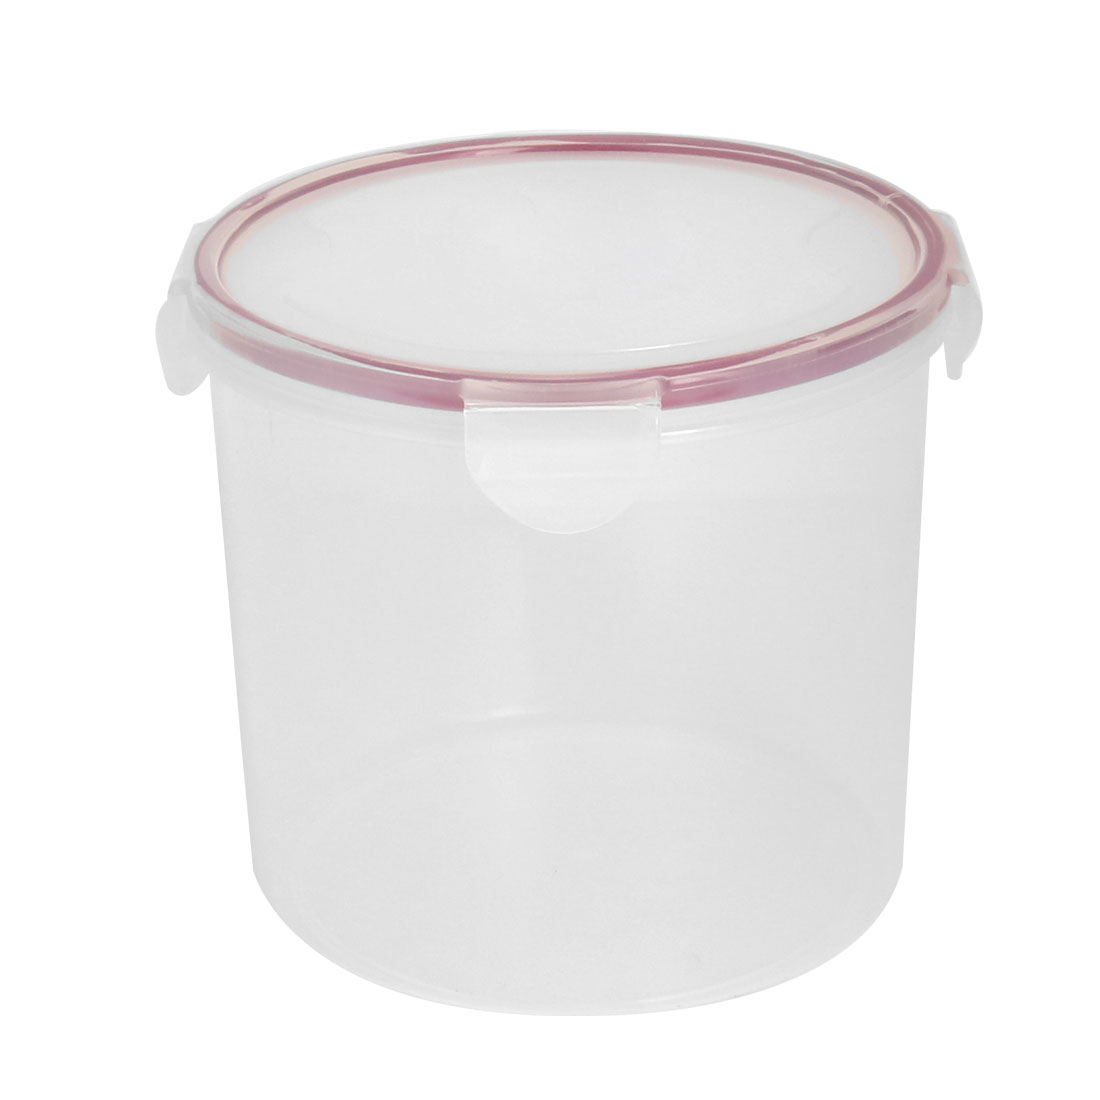 Home Kitchenware PP Cylinder Sealed Food Vegetable Fruit Storage Container 2L  sc 1 st  Walmart Canada & Home Kitchenware PP Cylinder Sealed Food Vegetable Fruit Storage ...